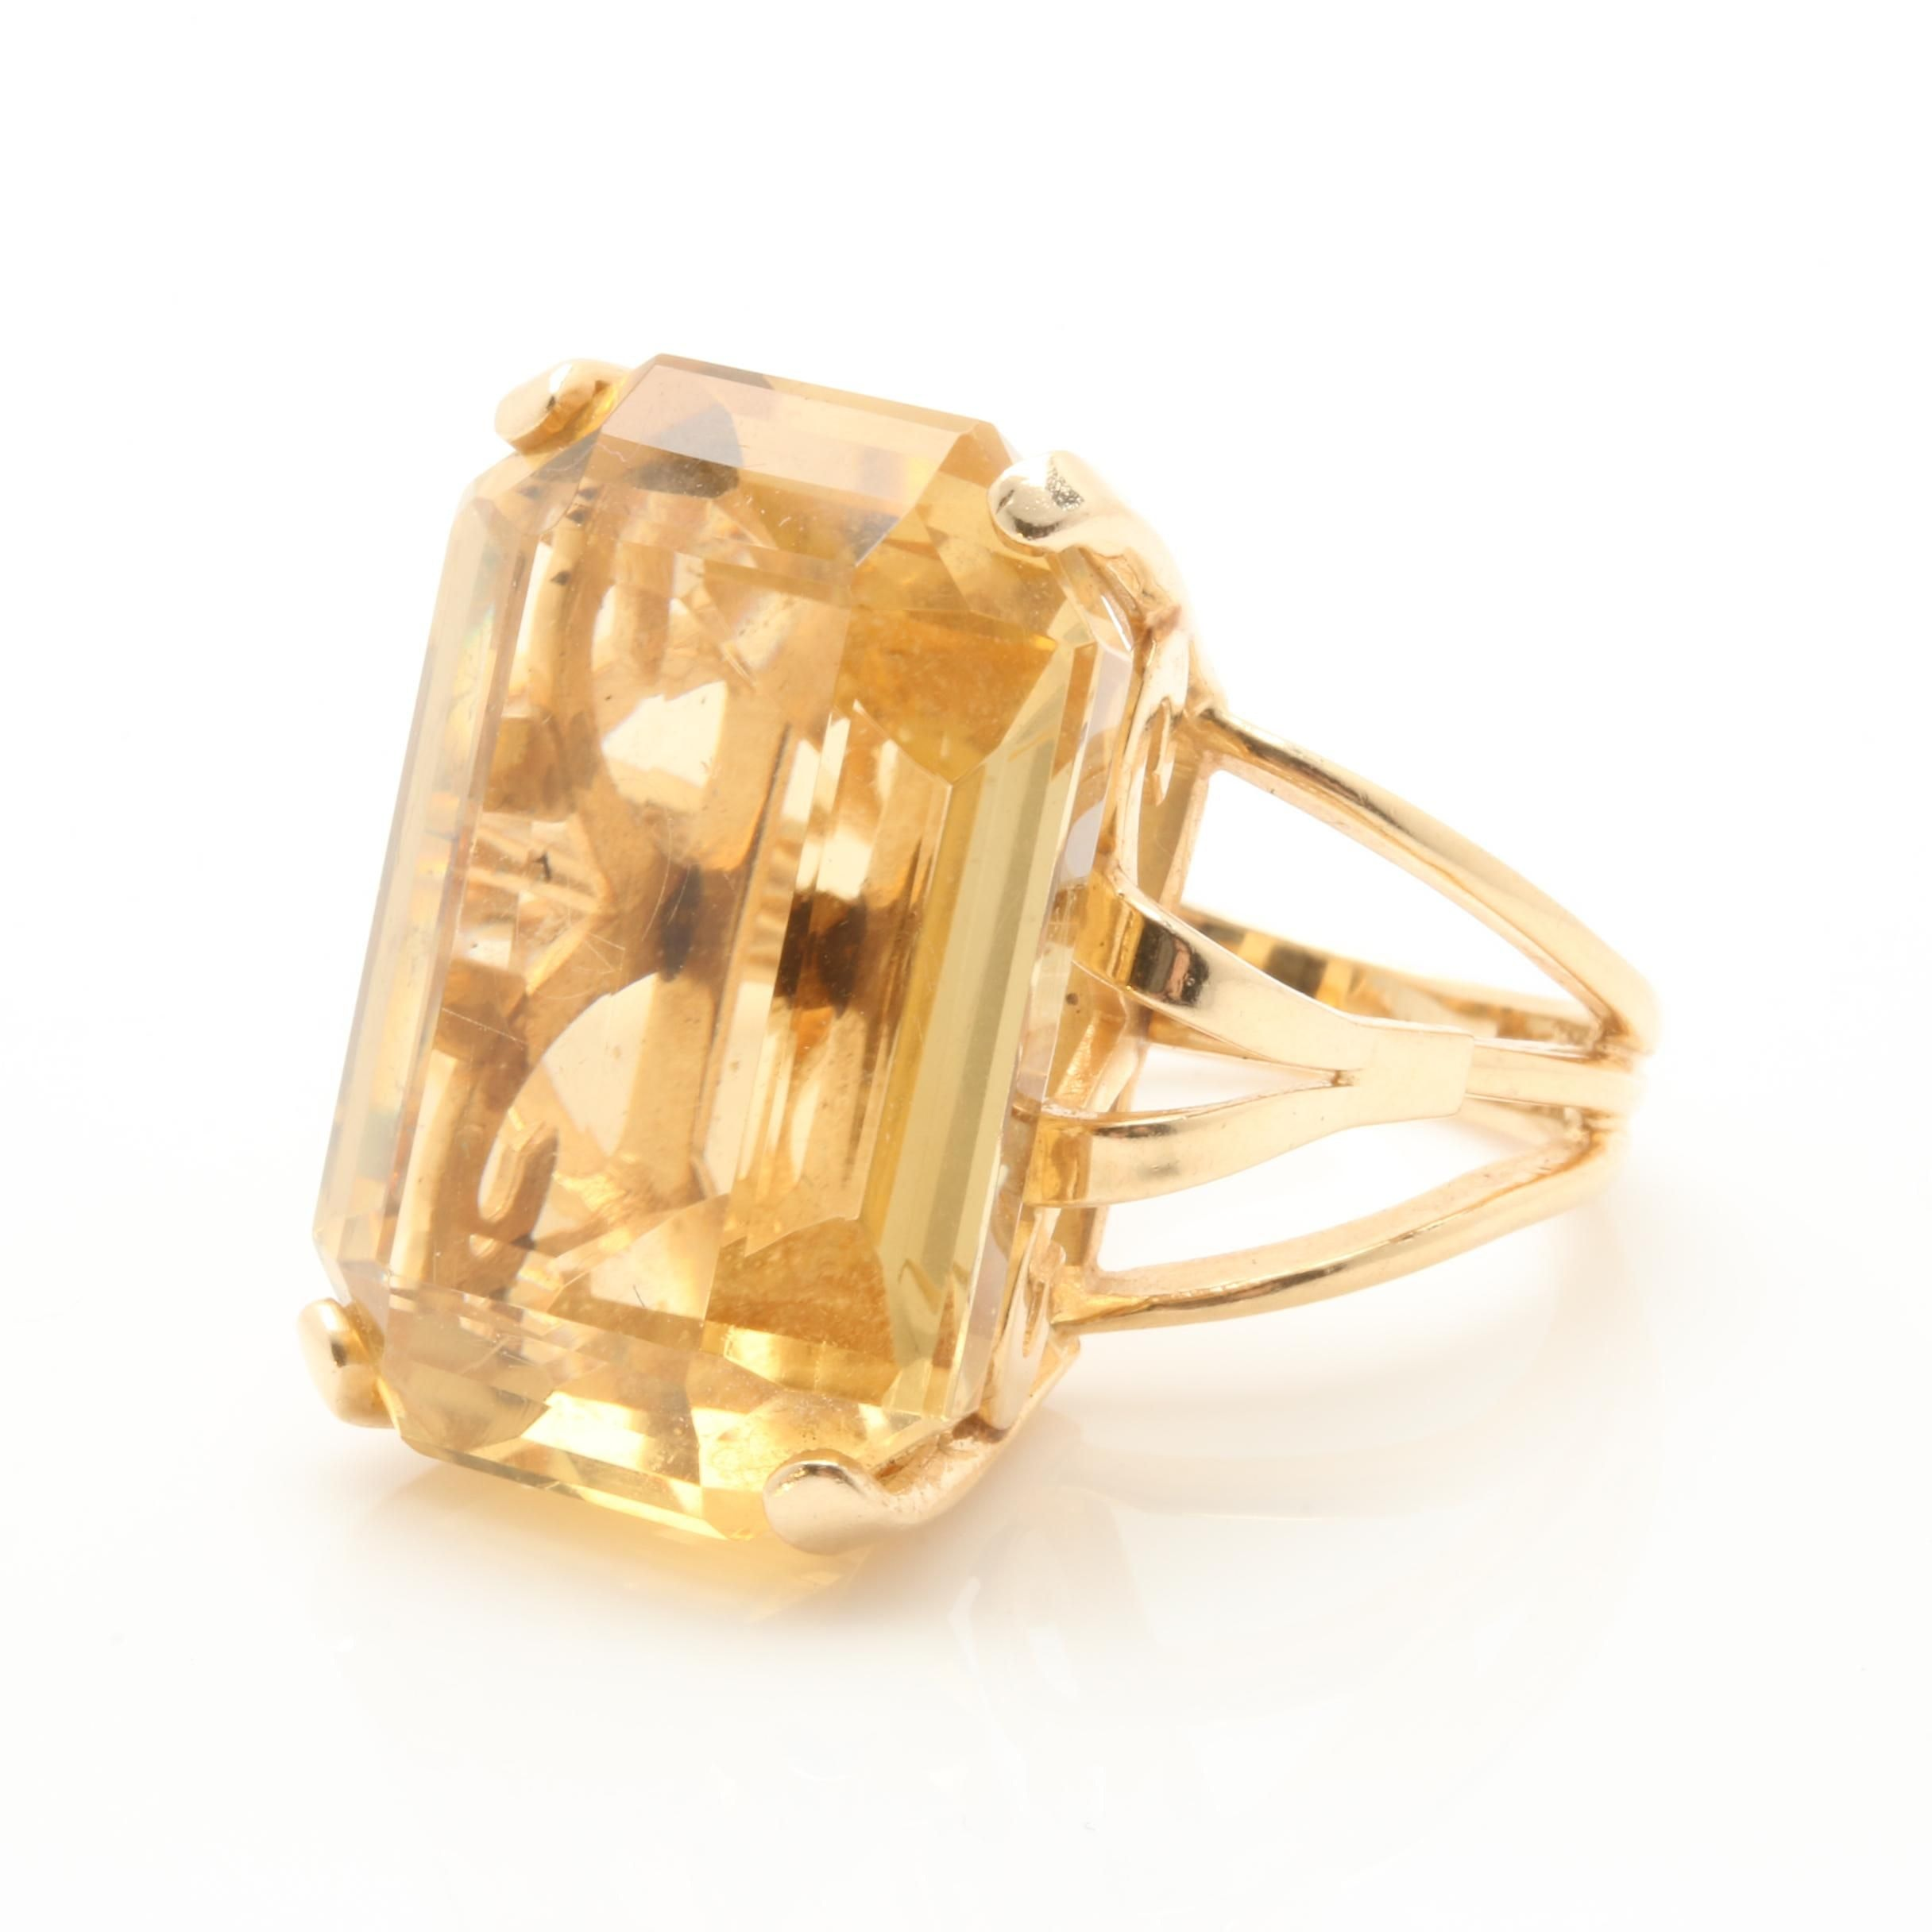 14K Yellow Gold 33.29 CT Citrine Solitaire Ring